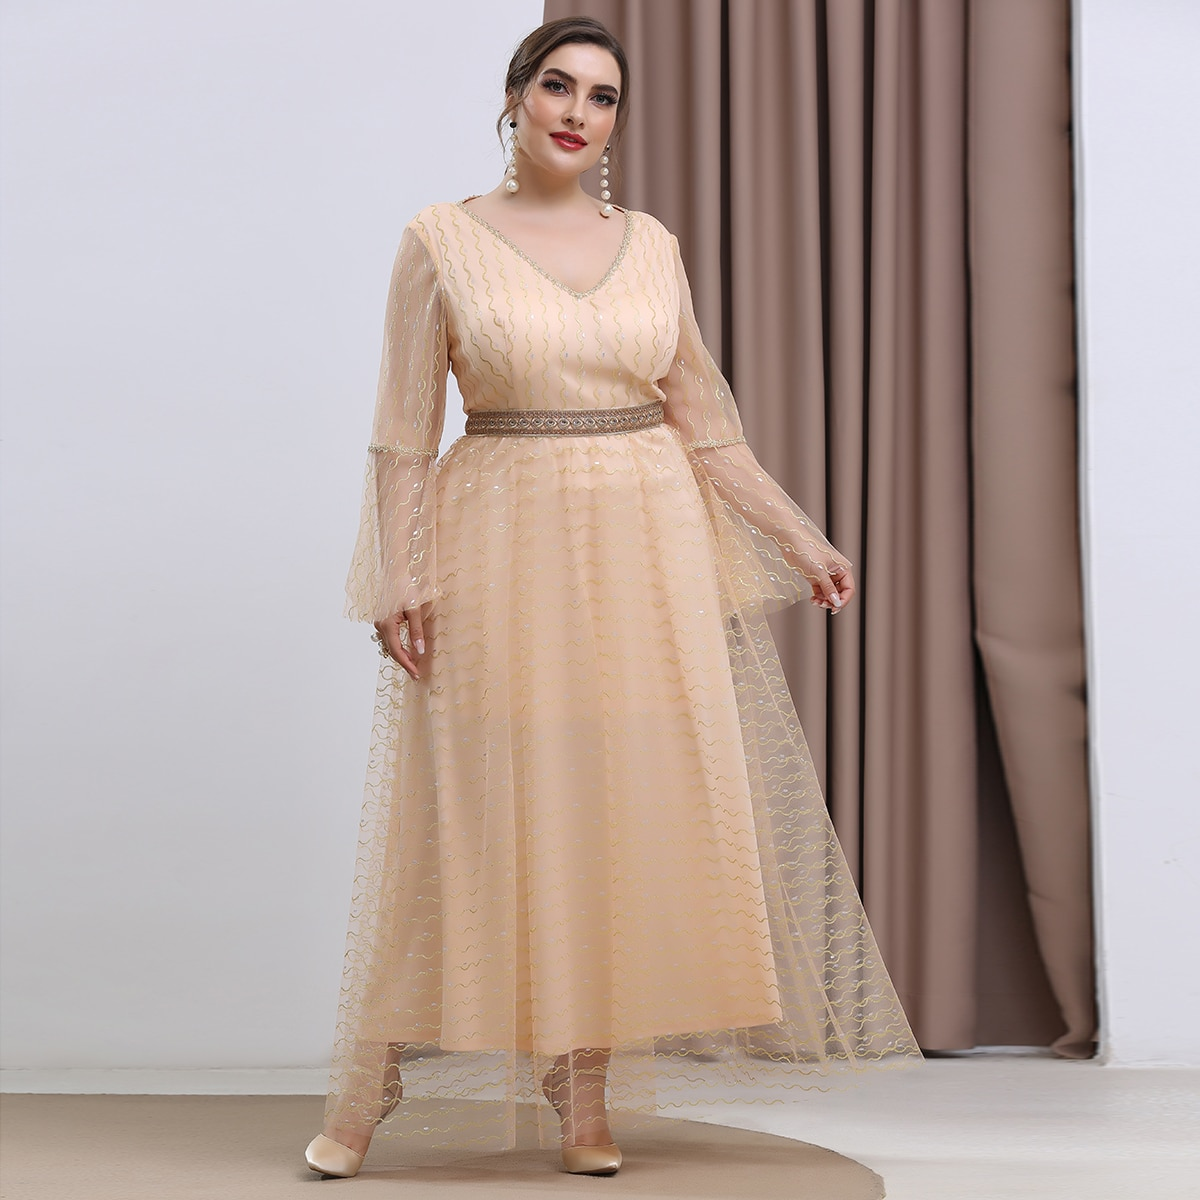 Plus Embroidery Mesh Overlay Formal Dress